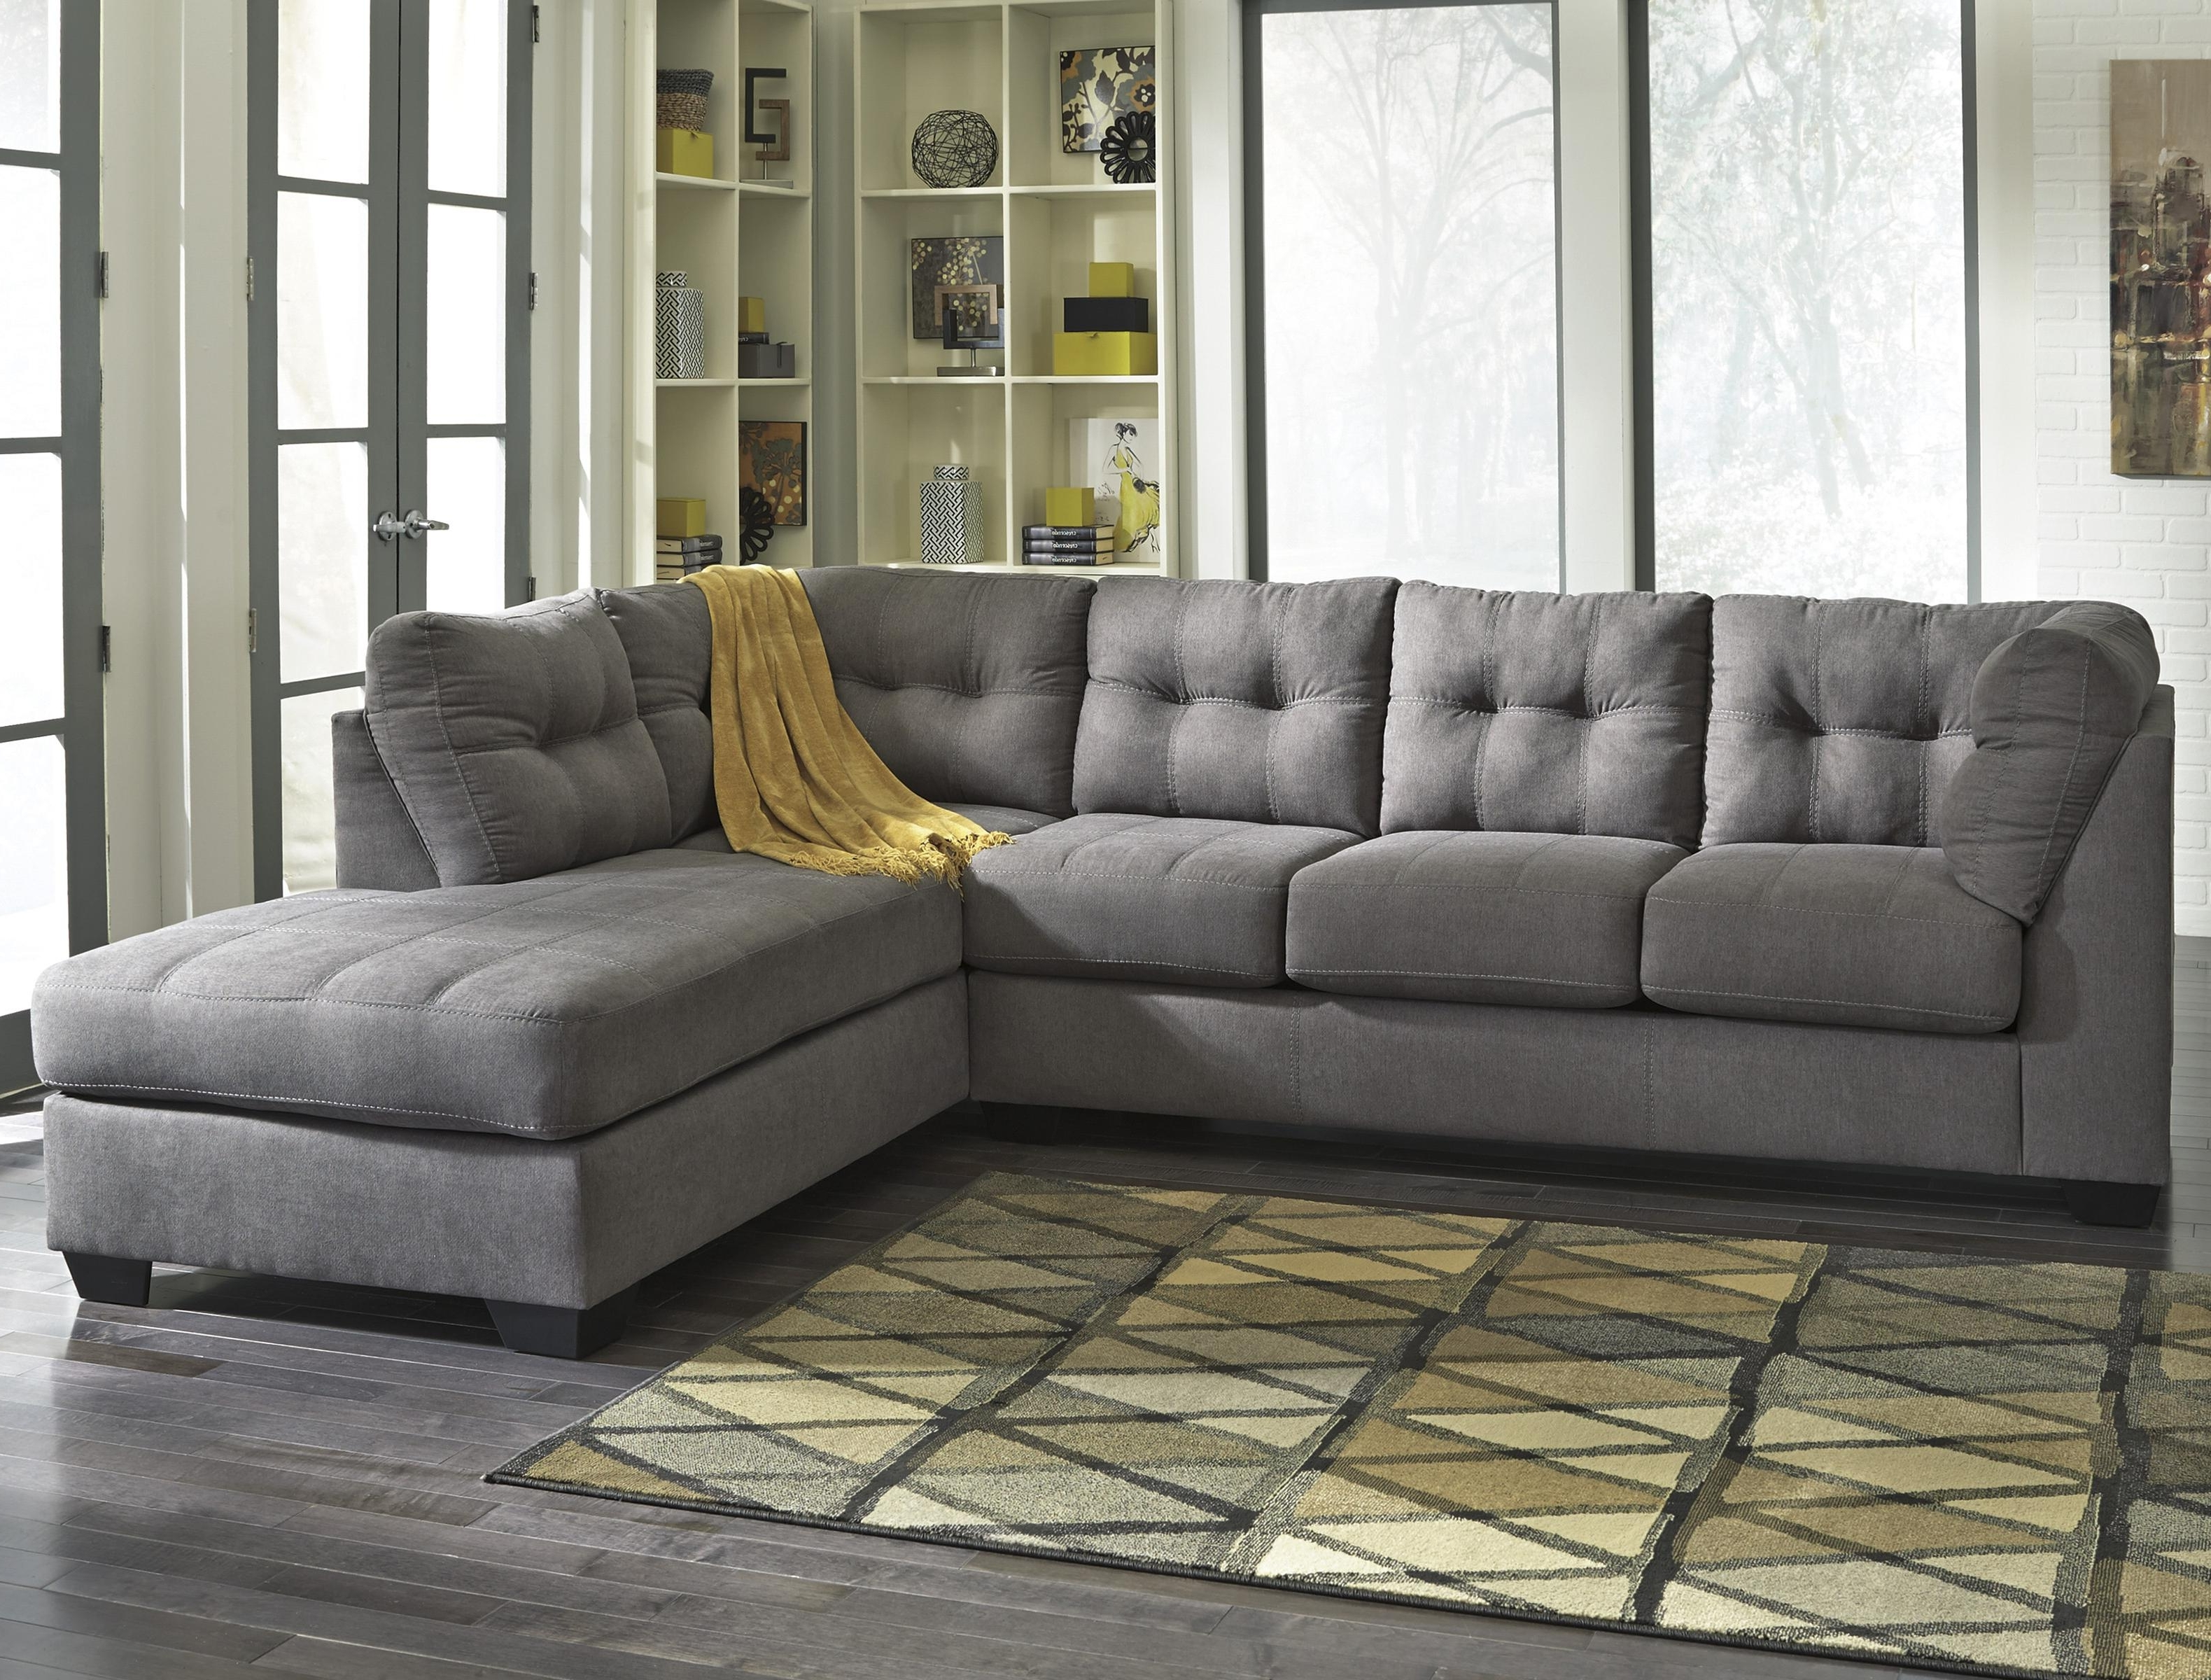 Widely Used Mississauga Sectional Sofas Pertaining To Inspirational Sectional Sofas Portland Oregon 66 On Sectional (View 5 of 20)